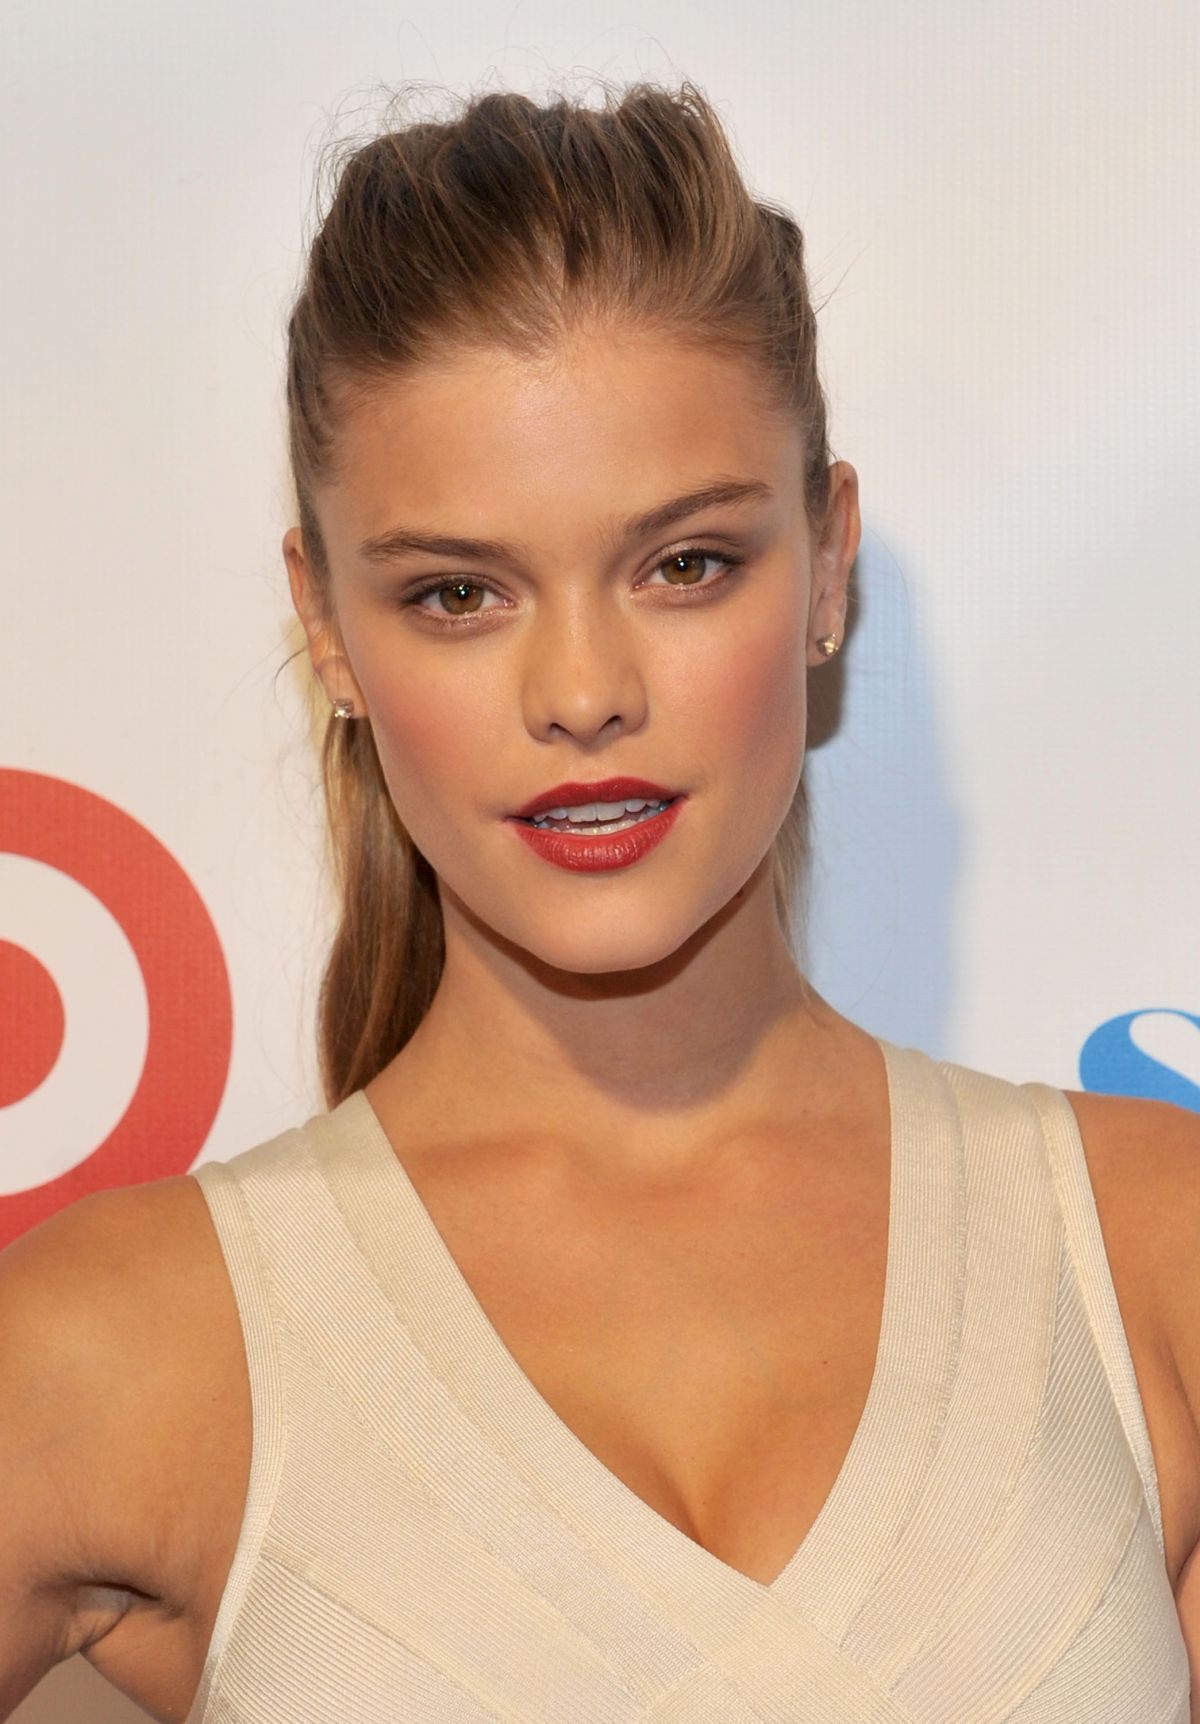 Nina Agdal - The Sports Illustrated Swimsuit 2014 Beach ... |Nina Agdal Sports Illustrated 2014